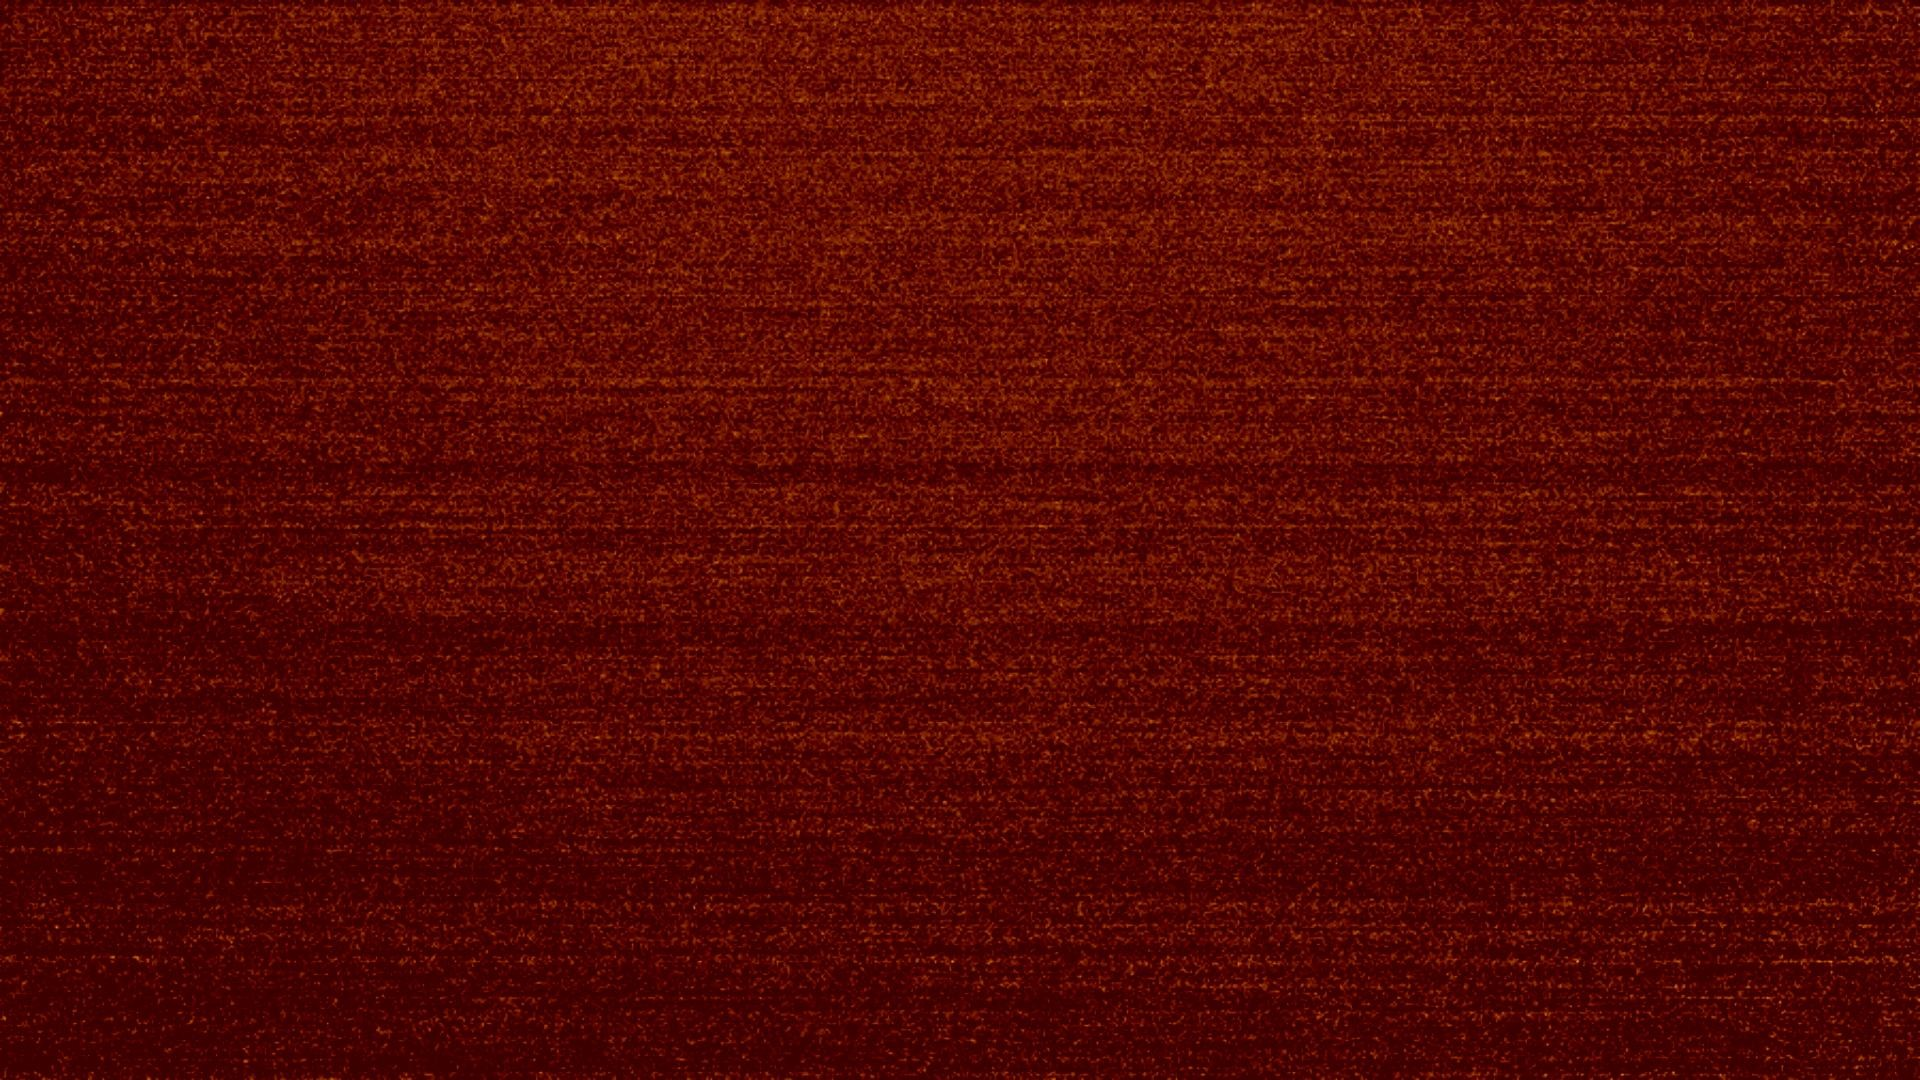 Red And Gold Background ·① Download Free Awesome